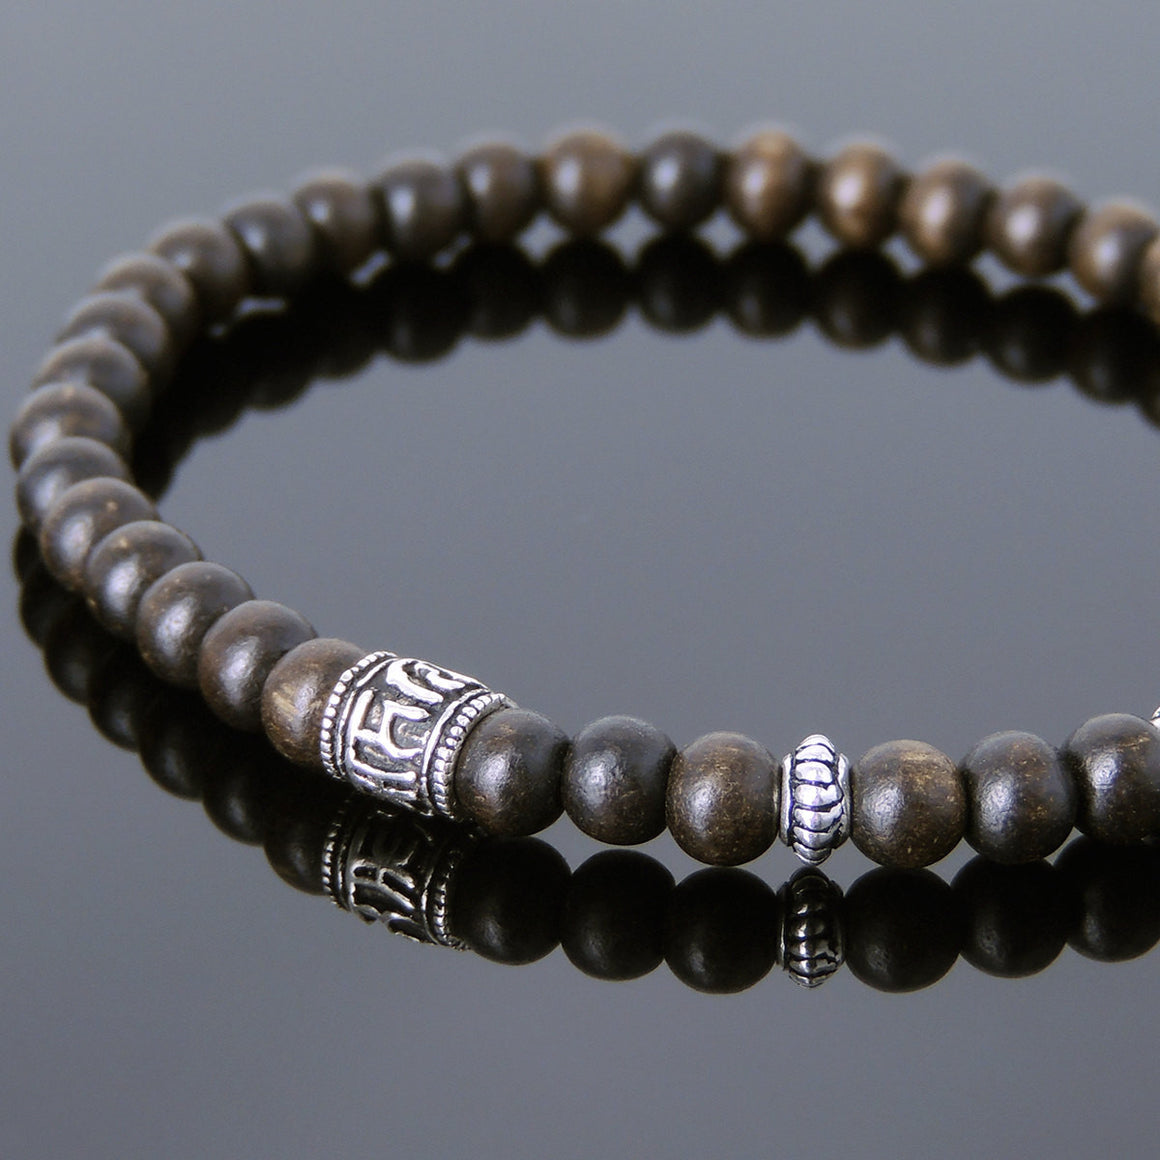 5mm Agarwood Mala Healing Bracelet with S925 Sterling Silver OM Bead & Spacers - Handmade by Gem & Silver BR218